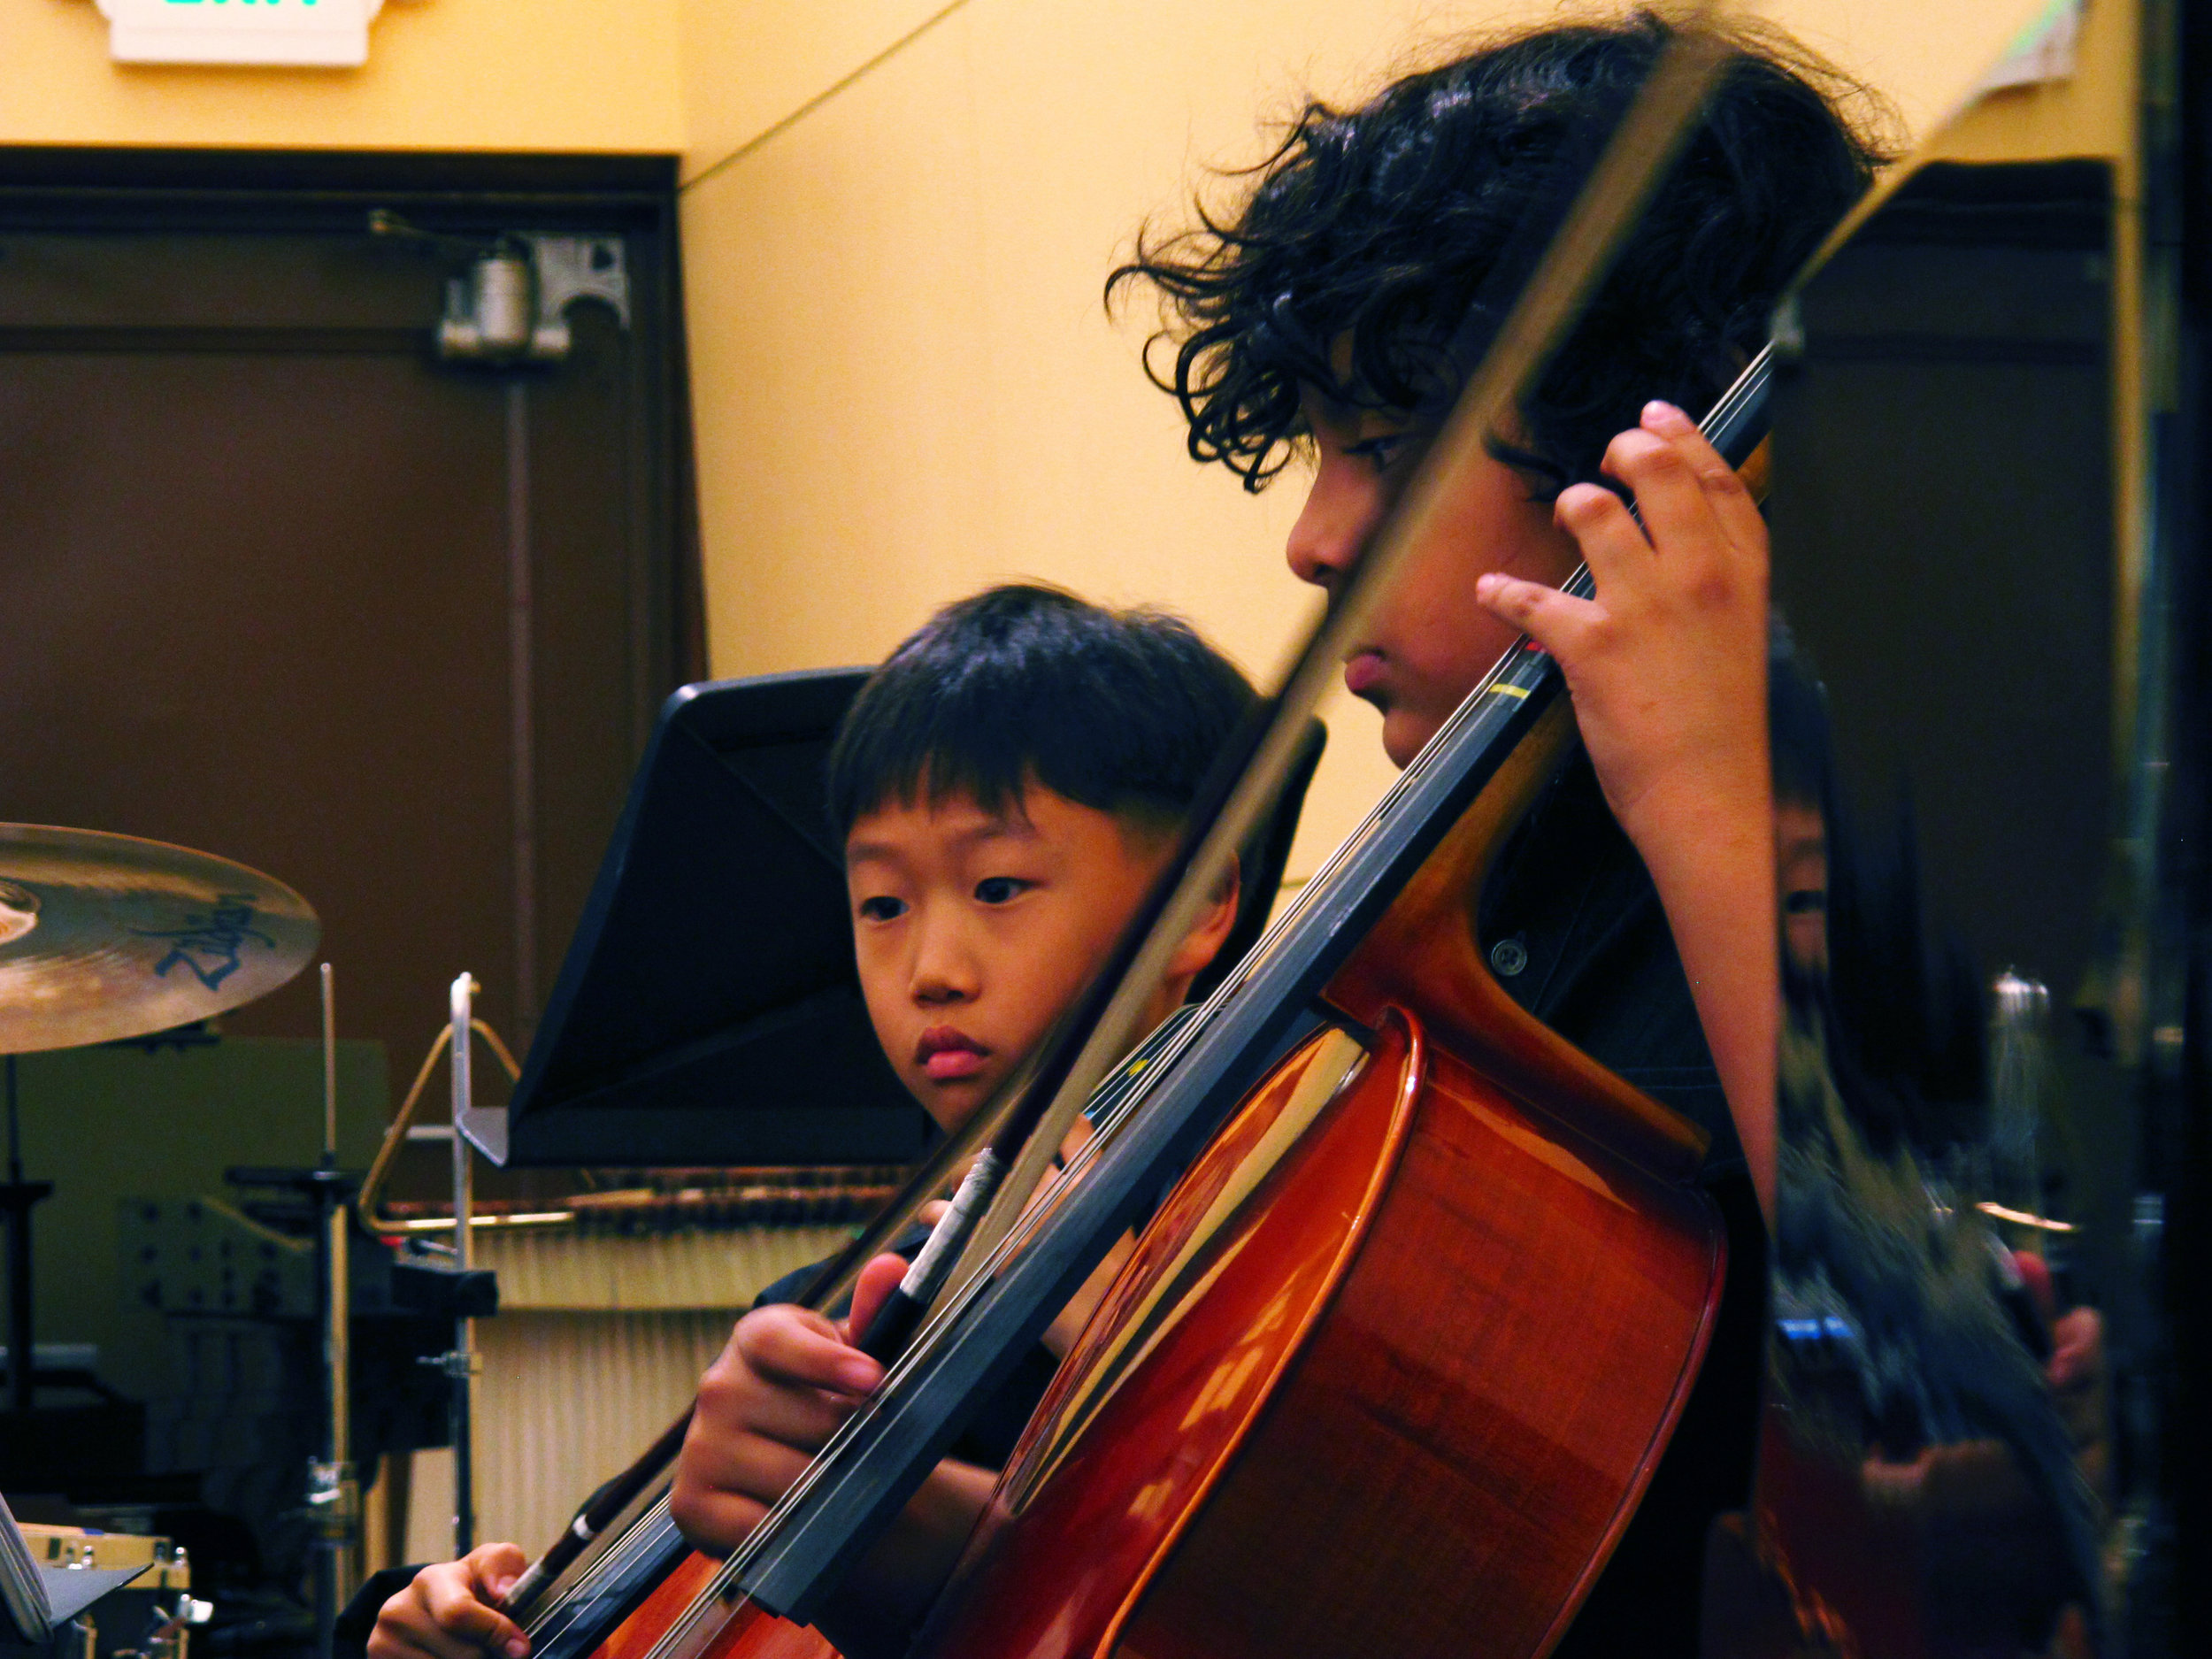 duo_boys_cello_focus.jpg